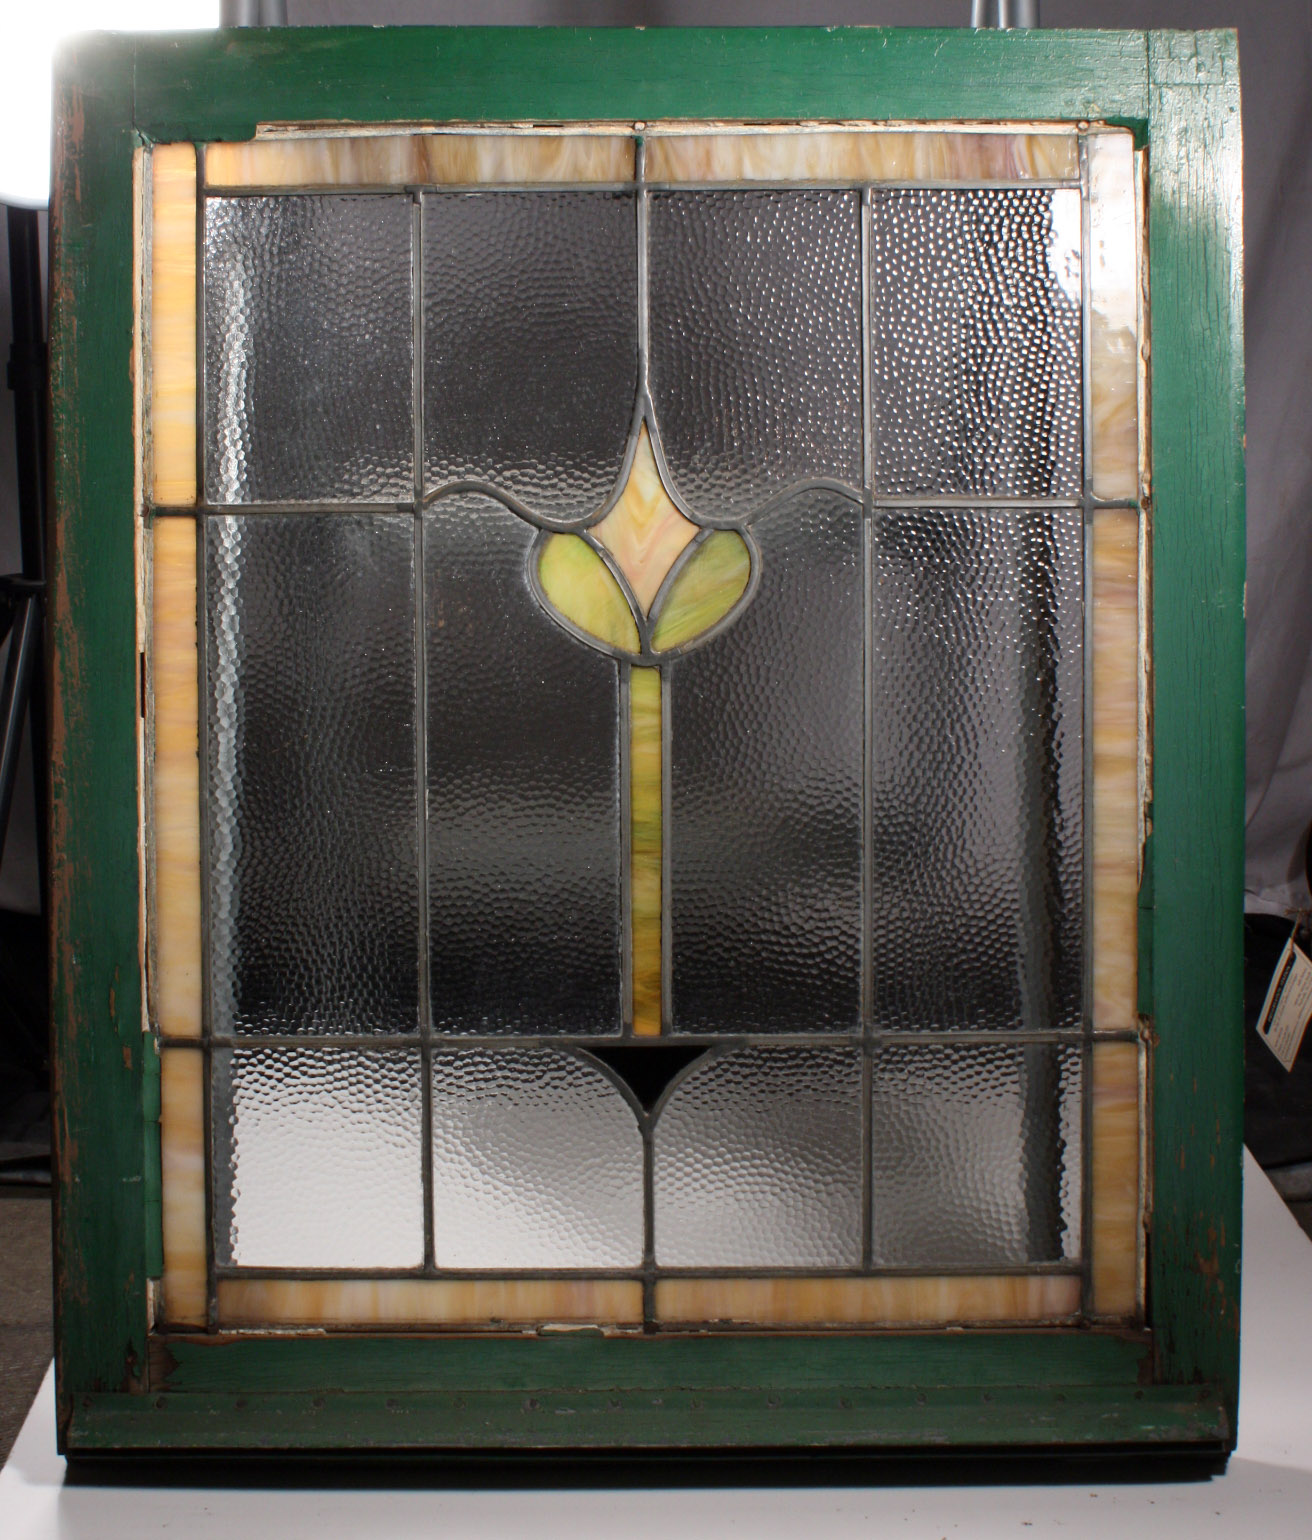 Superb antique american stained glass window nsg34 for for Windows 4 sale